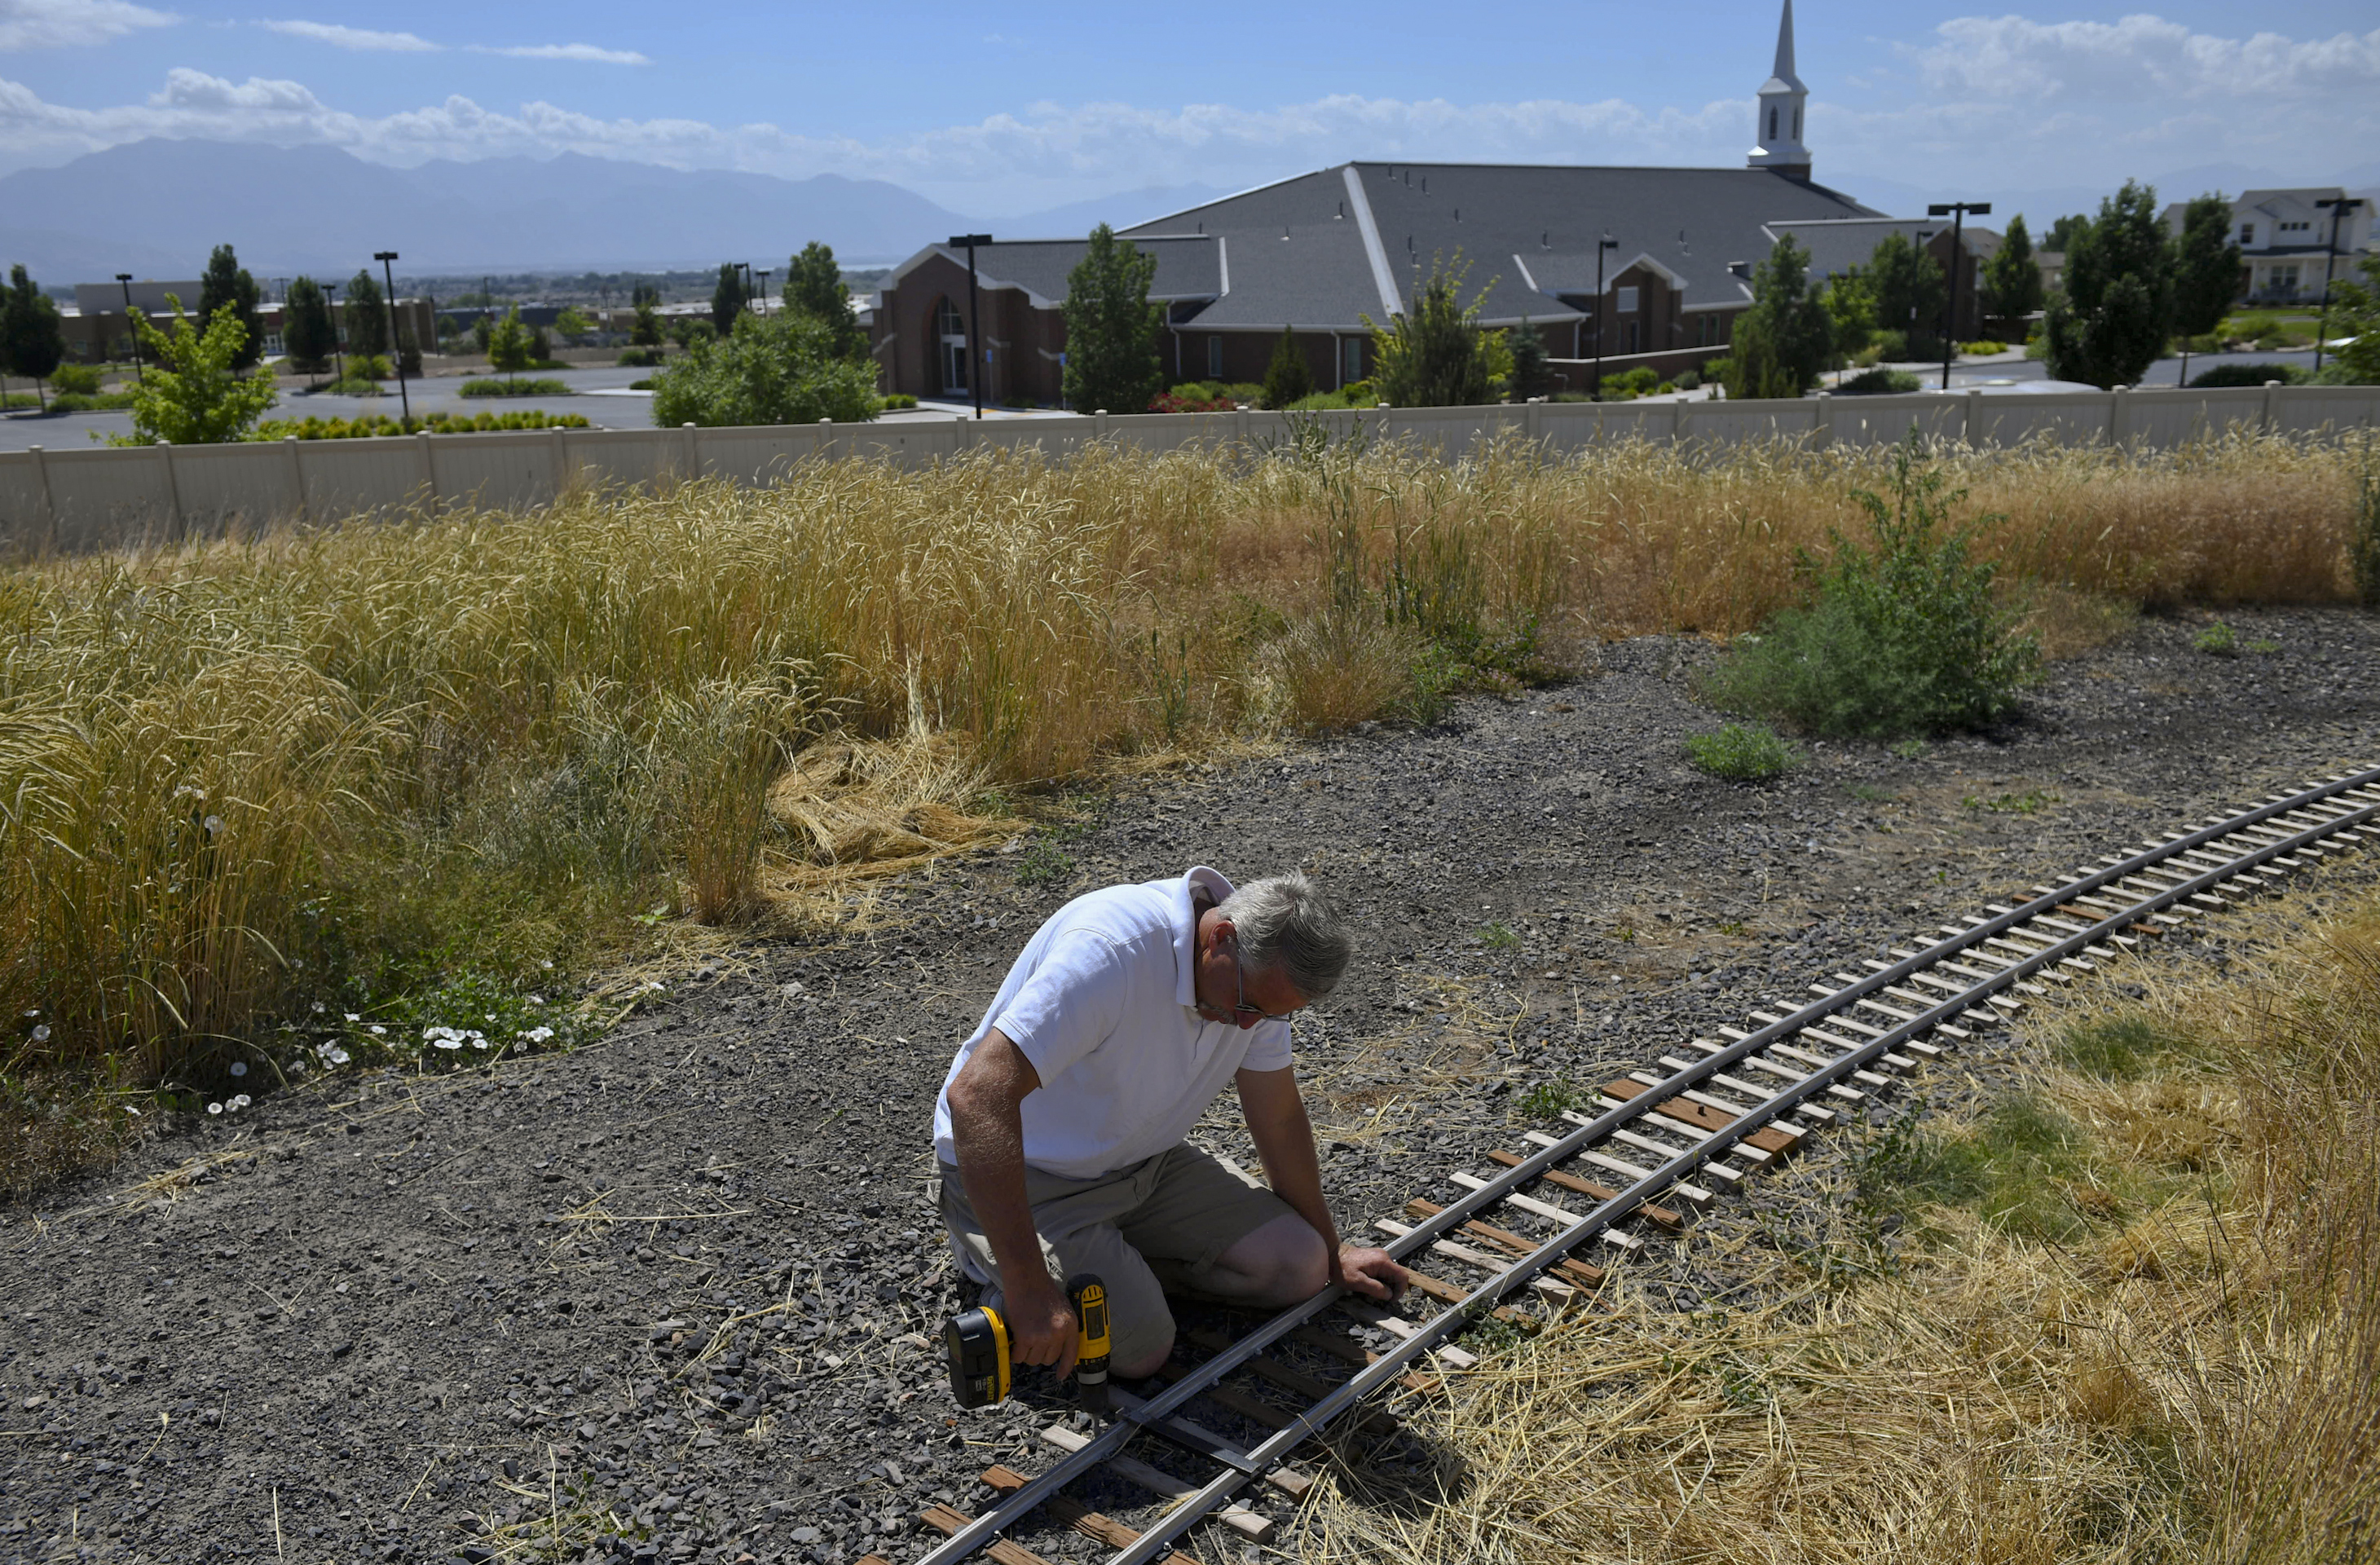 """ADVANCE FOR USE WITH WEEKEND EDITIONS JULY 7-8, 2018 AND THEREAFTER In this Saturday, June 16, 2018 photo, Mike Hansen, co-founder of the Utah Live Steamers Railroad Club, corrects a heat kink in a section of track during public train rides held by Utah Live Steamers at Shay Park in Saratoga Springs, Utah. Shay Park's name has to do with the history of railroads in the area. """"A lot of these communities were built because of the railroad,"""" explained Hansen. """"At one point, you could get on a train here and go anywhere in the country.""""  (Isaac Hale/The Daily Herald via AP)"""